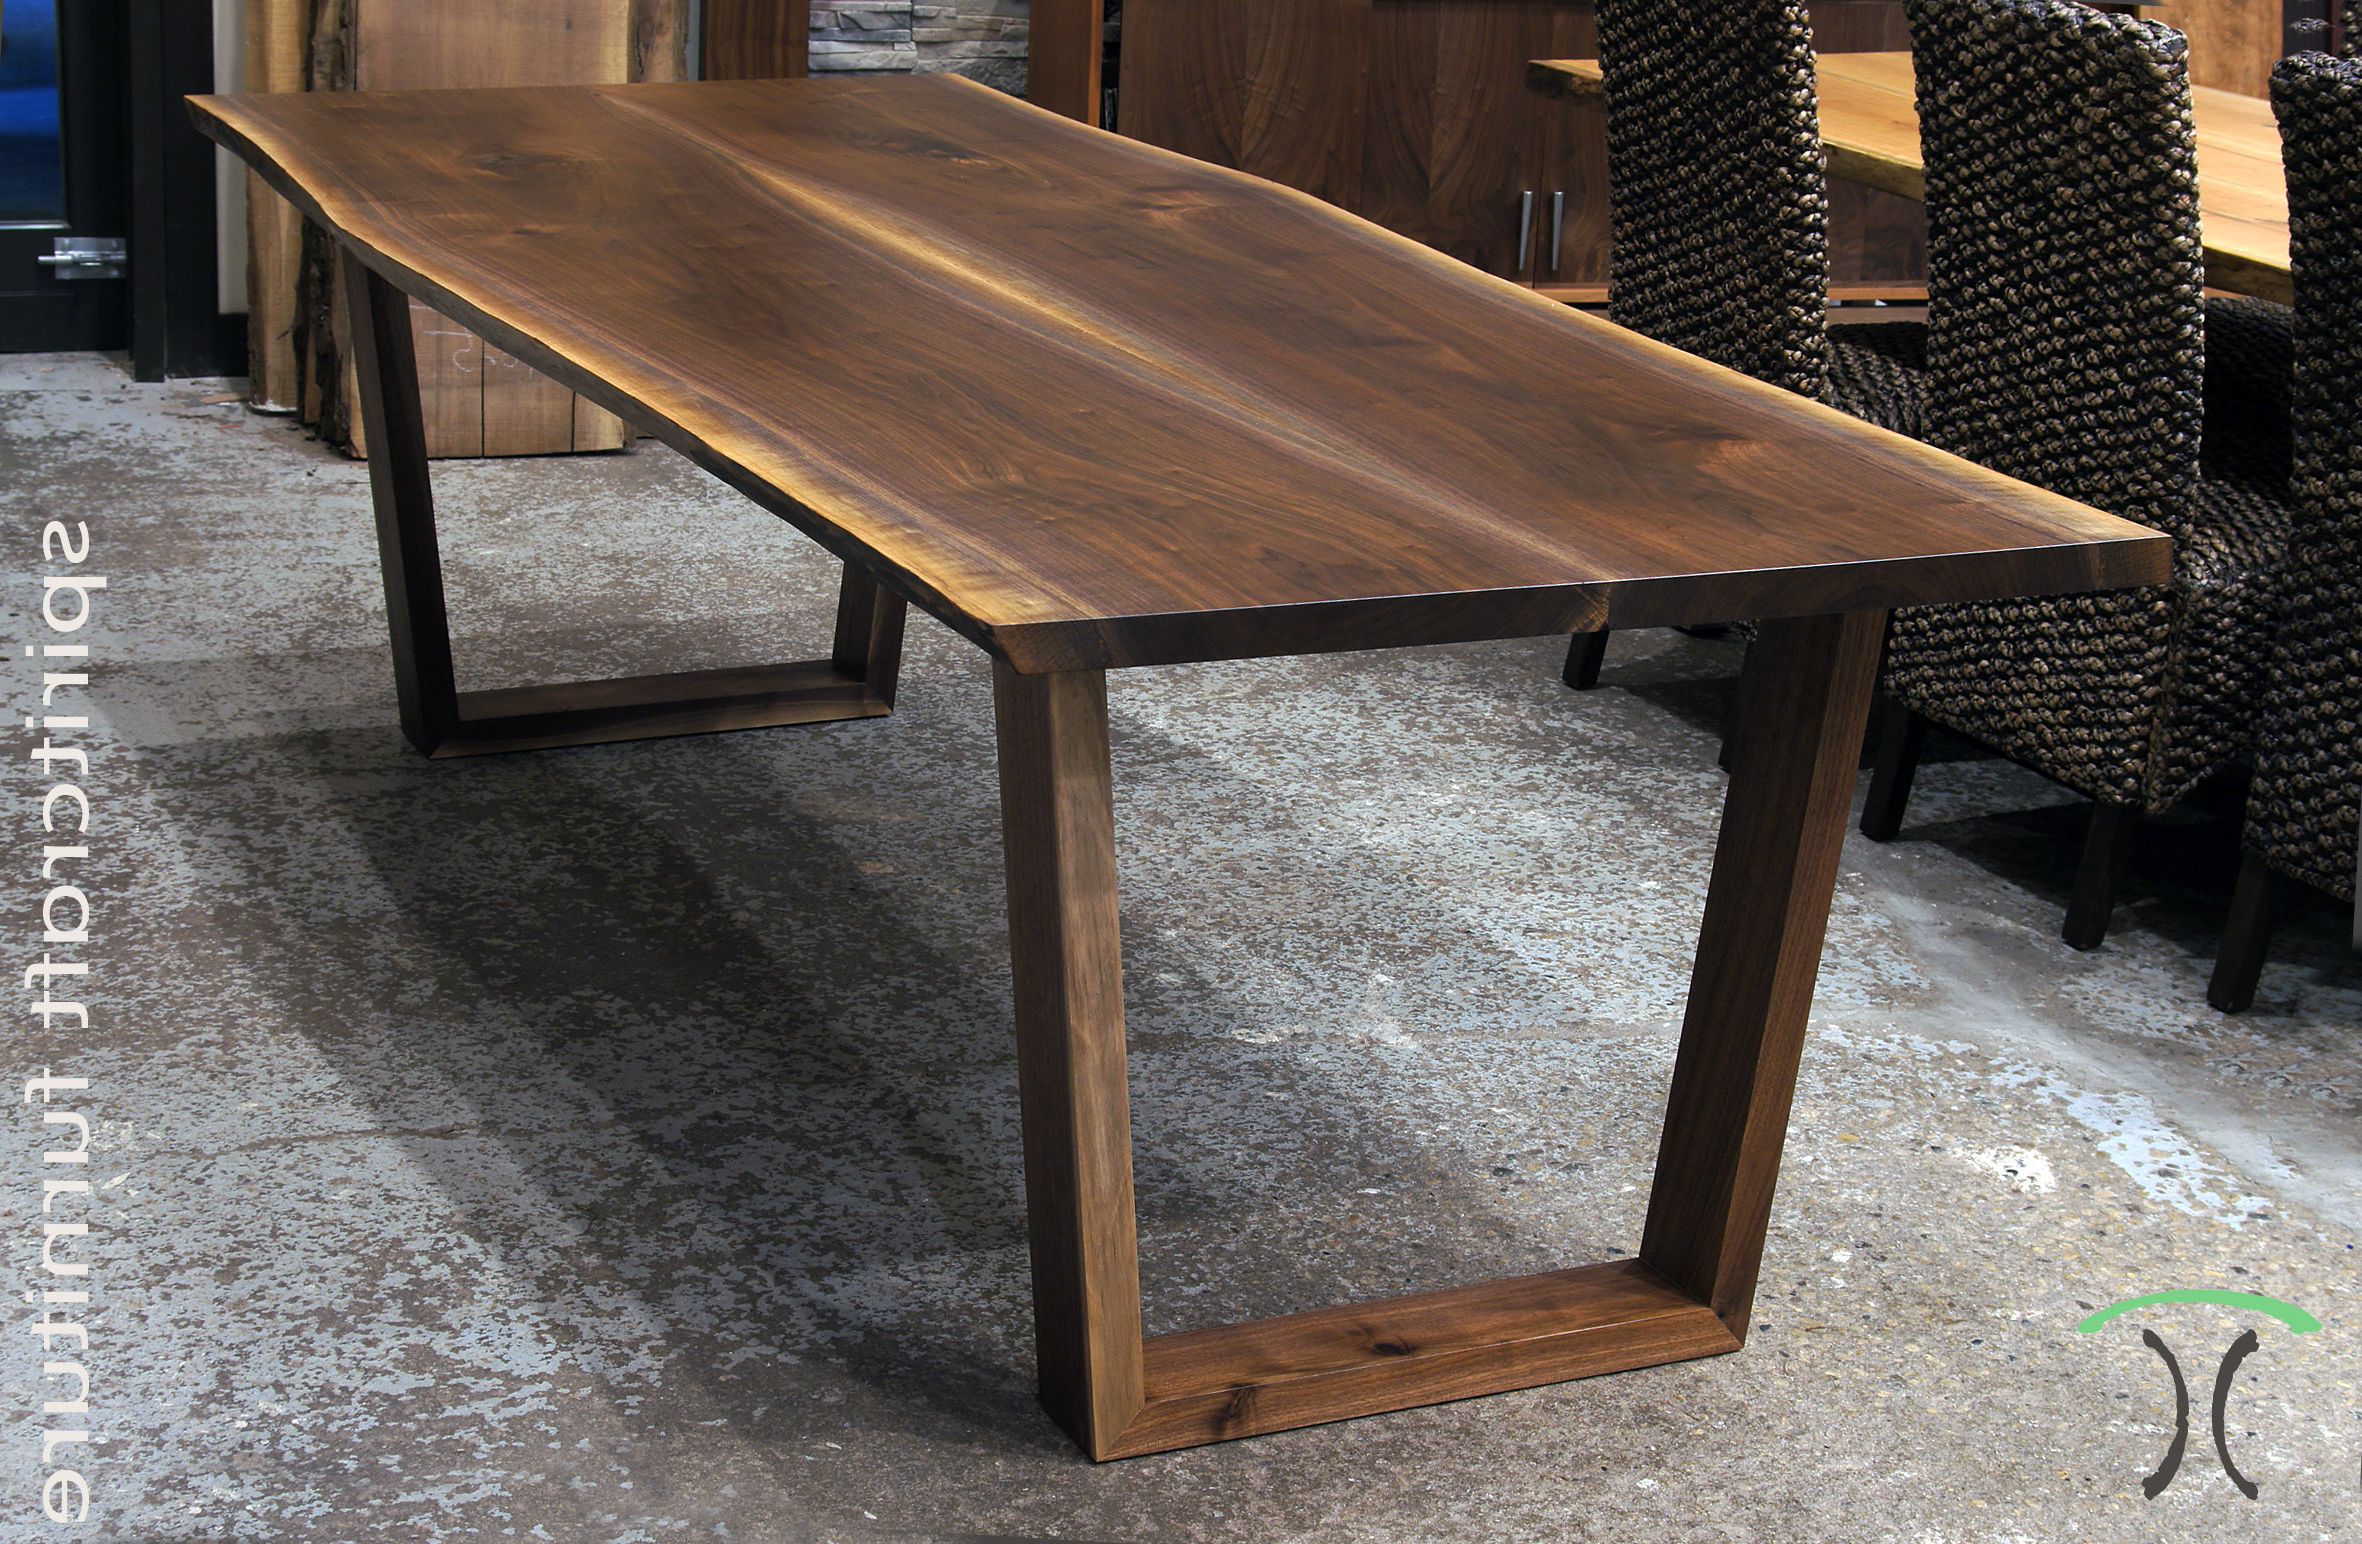 Trendy Walnut Finish Live Edge Wood Contemporary Dining Tables Intended For Live Edge Slab Dining Tables, Walnut Slabs And Tops (View 17 of 25)